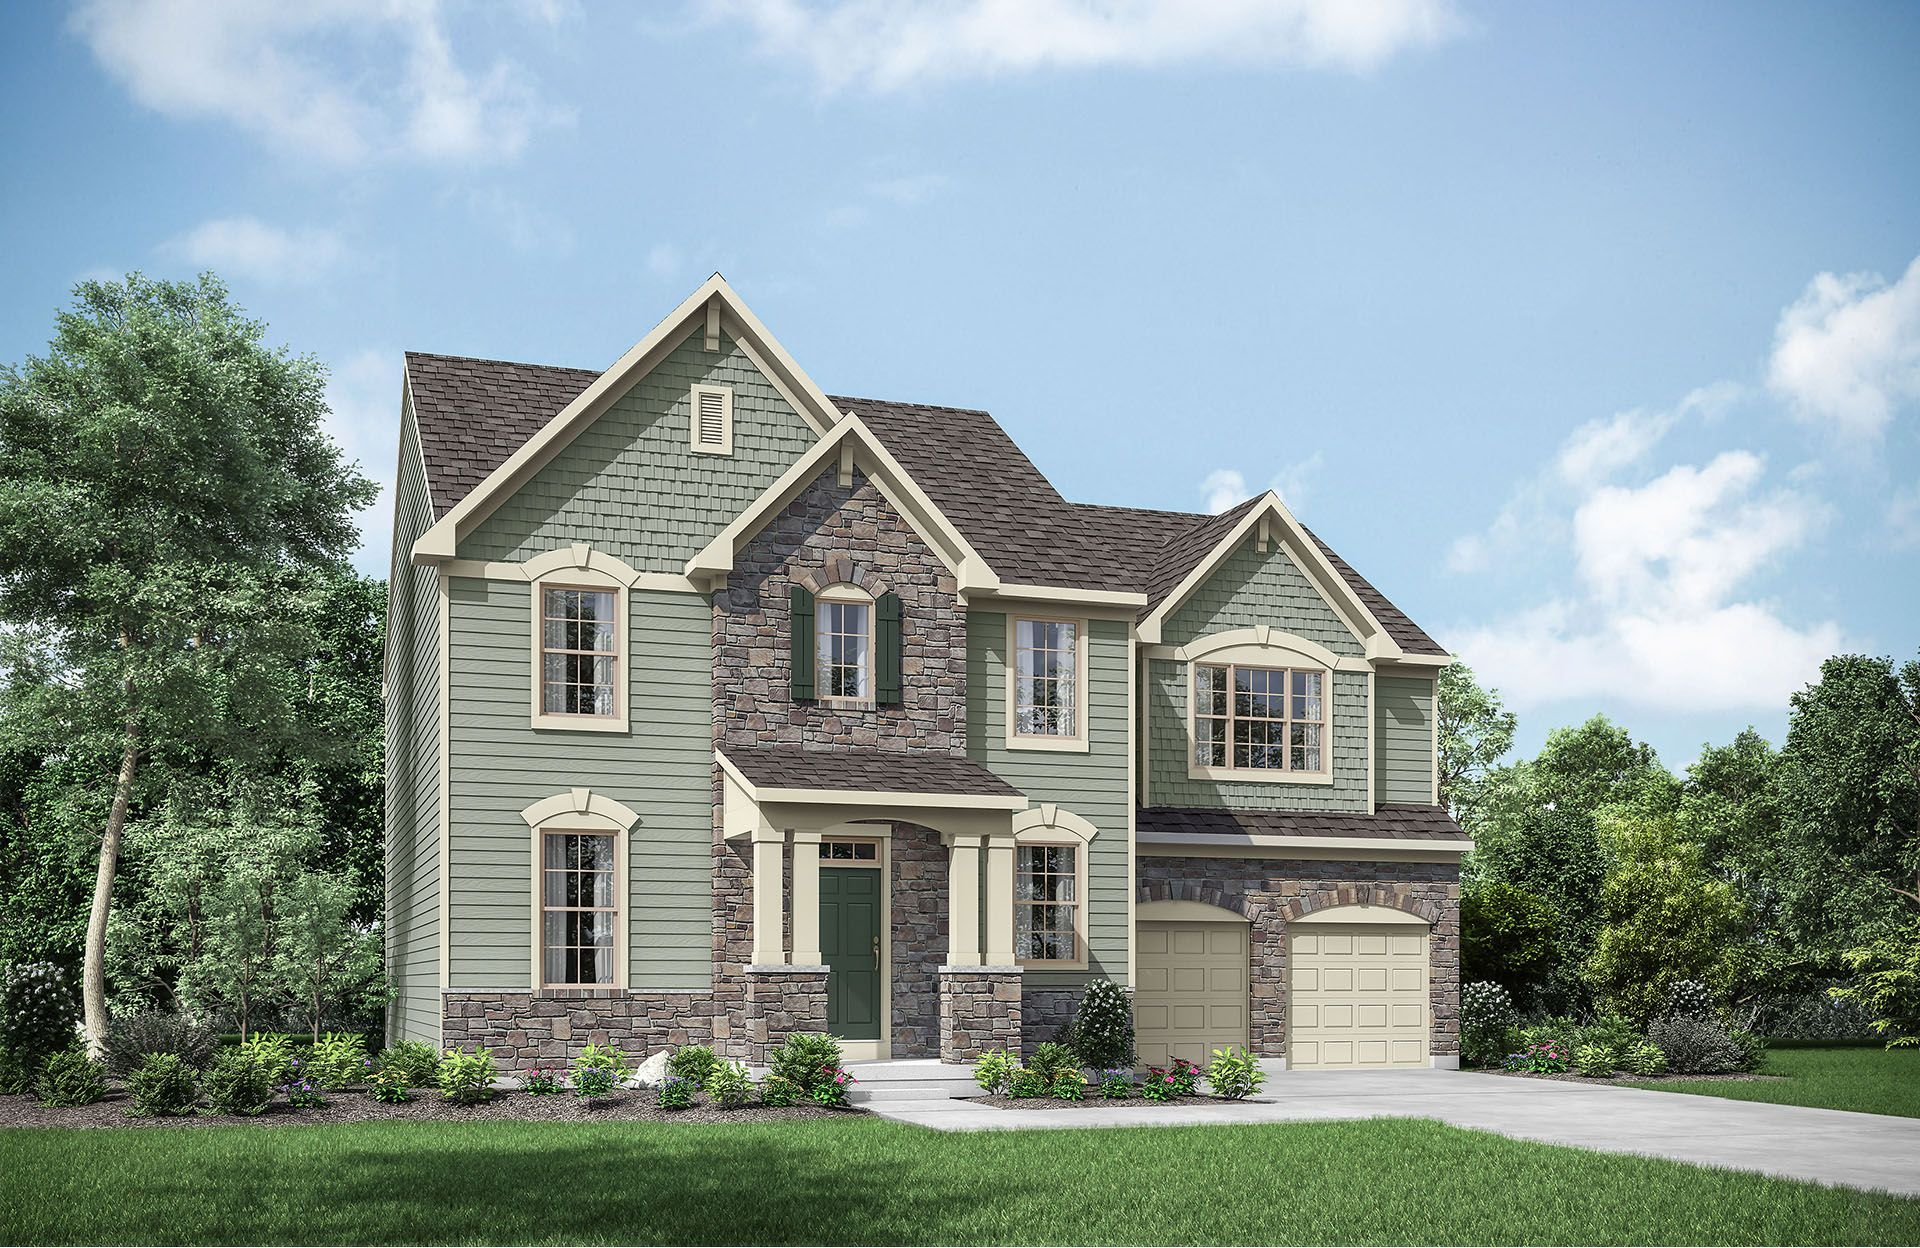 Single Family for Active at Estates At Rocky Pen - Ainsley 85 Edgewater Drive Falmouth, Virginia 22405 United States